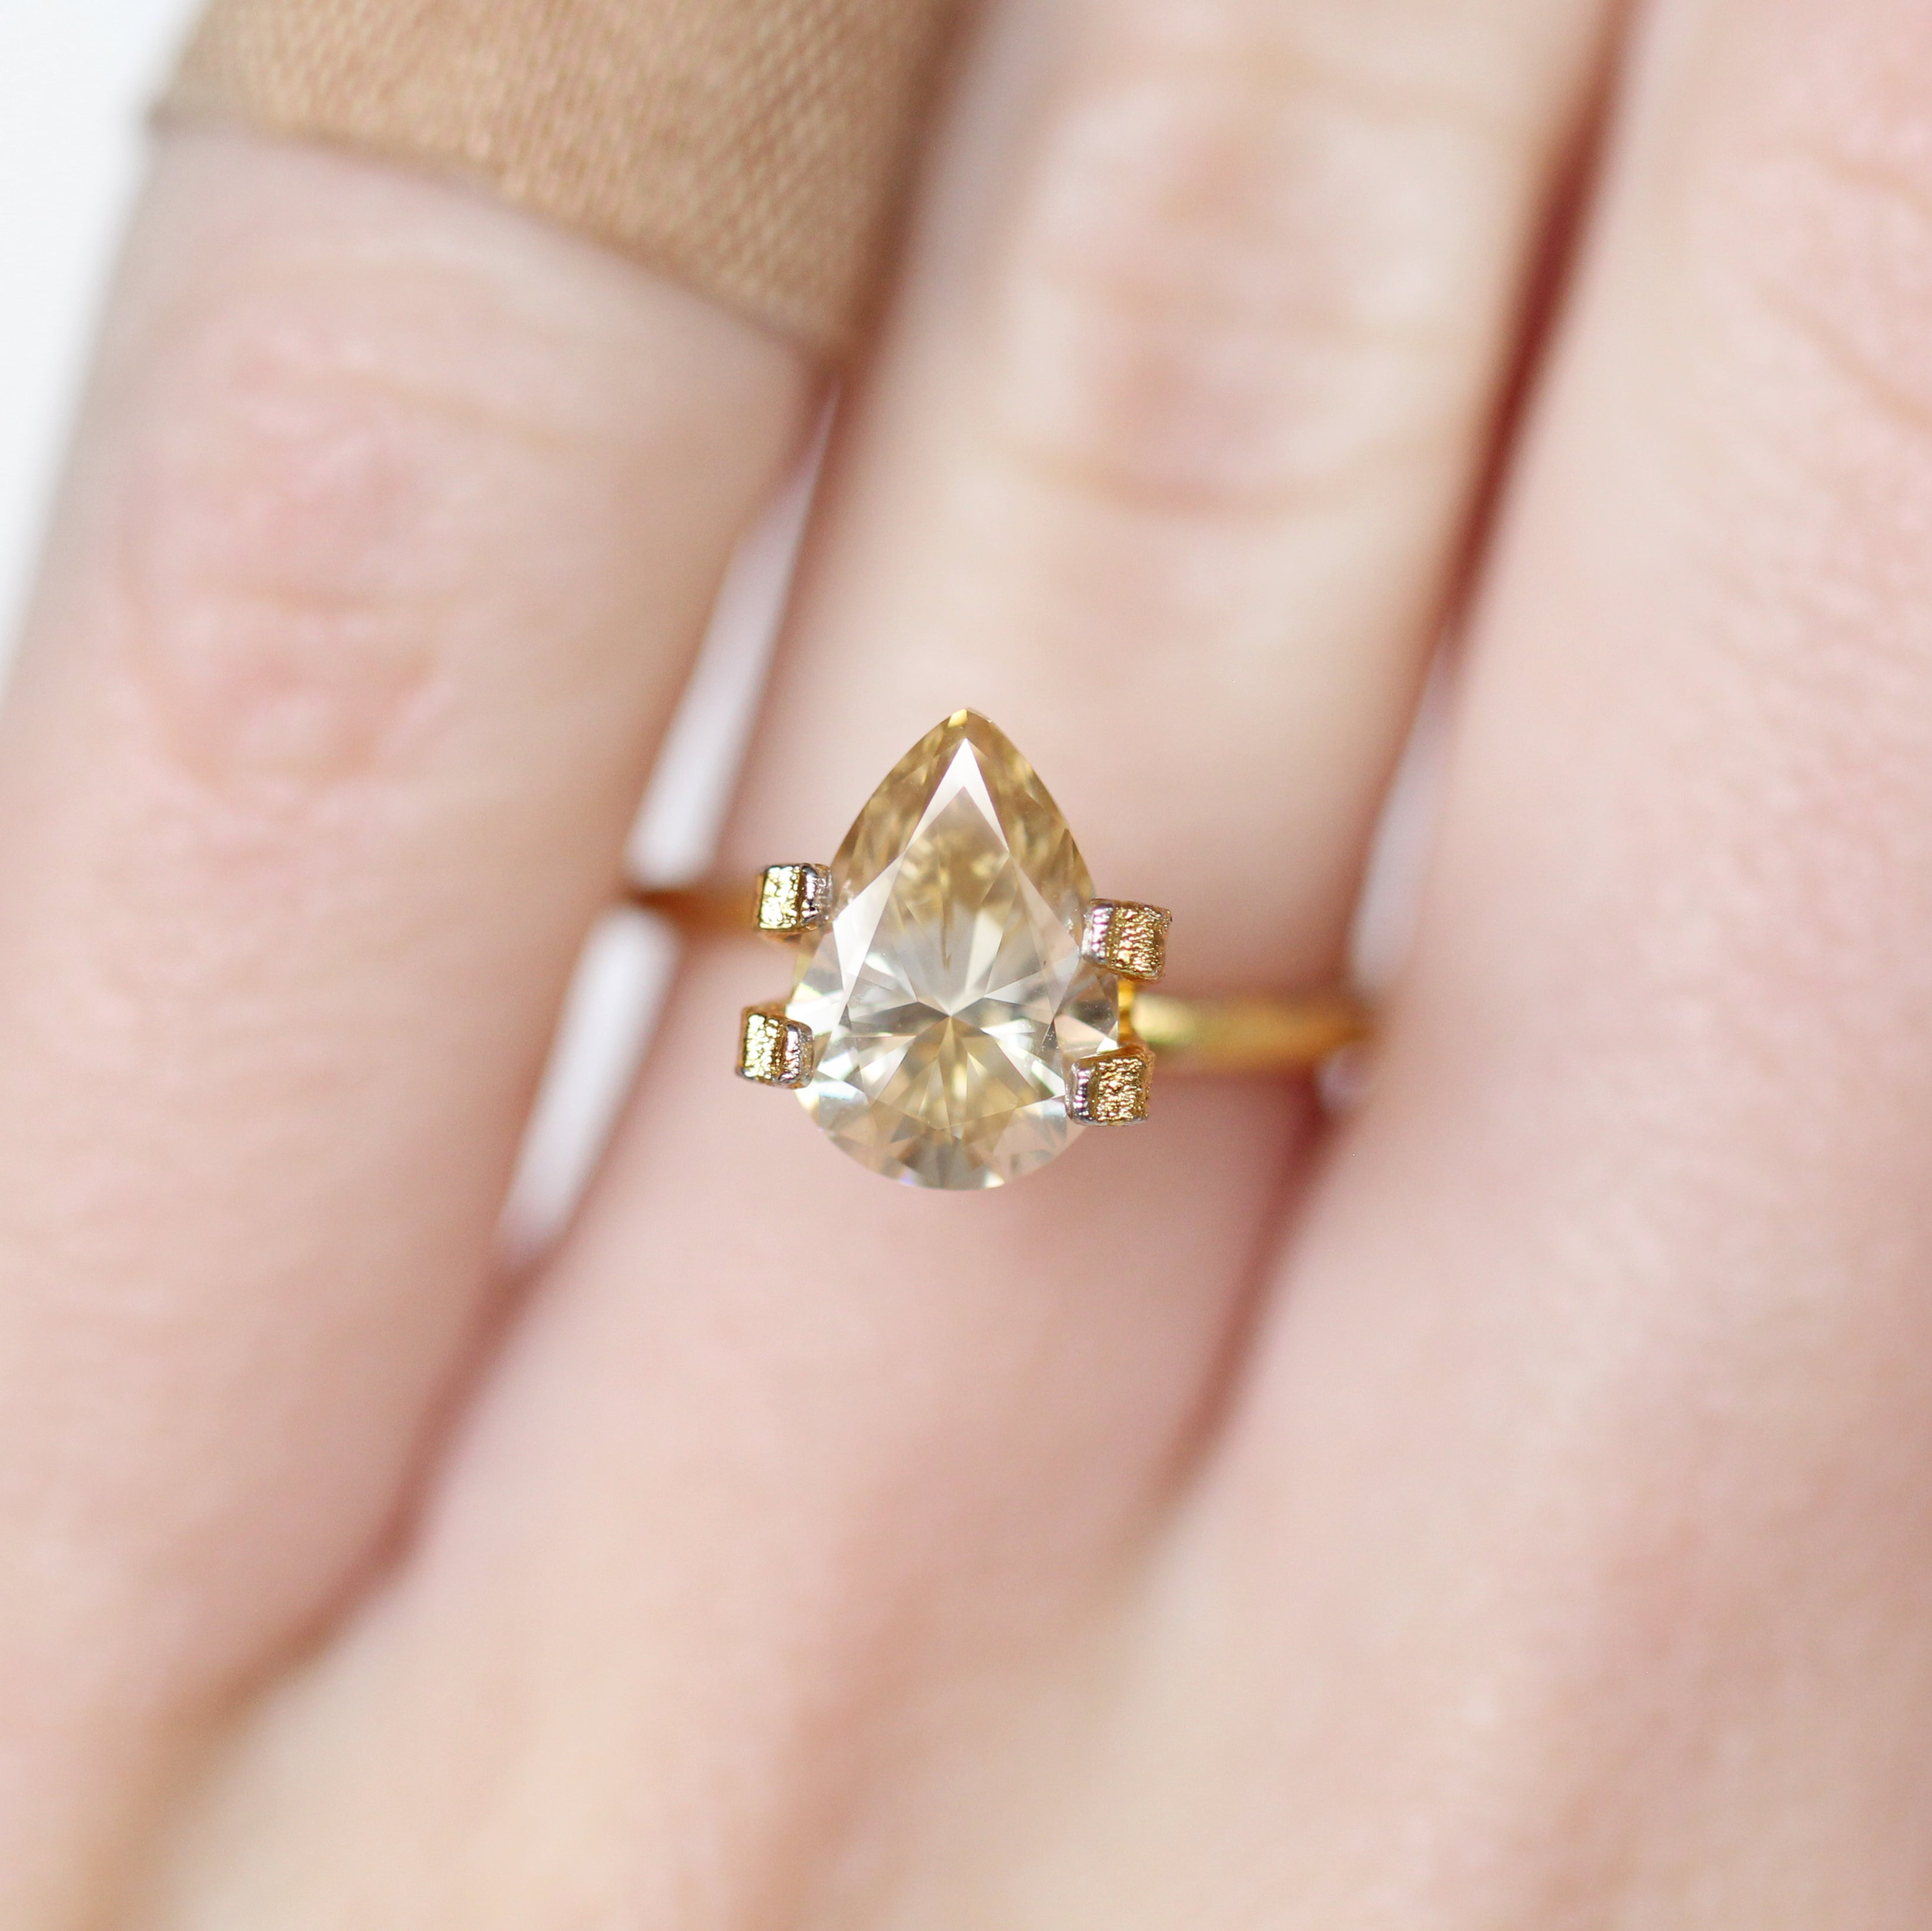 1.75 Carat Pear Moissanite- Inventory Code PBMOI175 - Salt & Pepper Celestial Diamond Engagement Rings and Wedding Bands  by Midwinter Co.